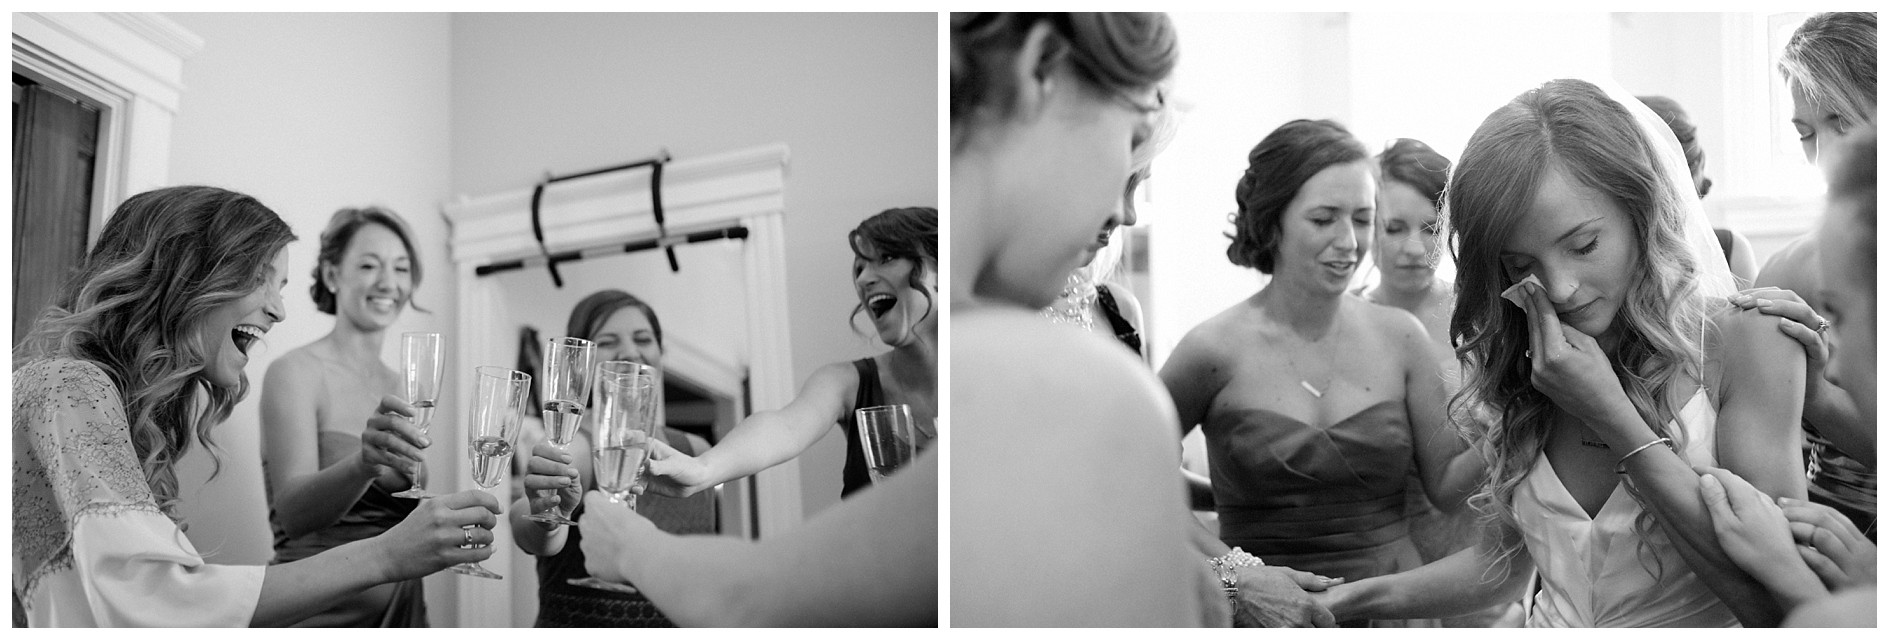 Bloom&Lo_AtlantaPhotographer_AmeliaTatnall_2015_Wedding_Georgia_Atlanta_AmbientStudio_Sara&Jared_Blog_Portfolio__0016.jpg